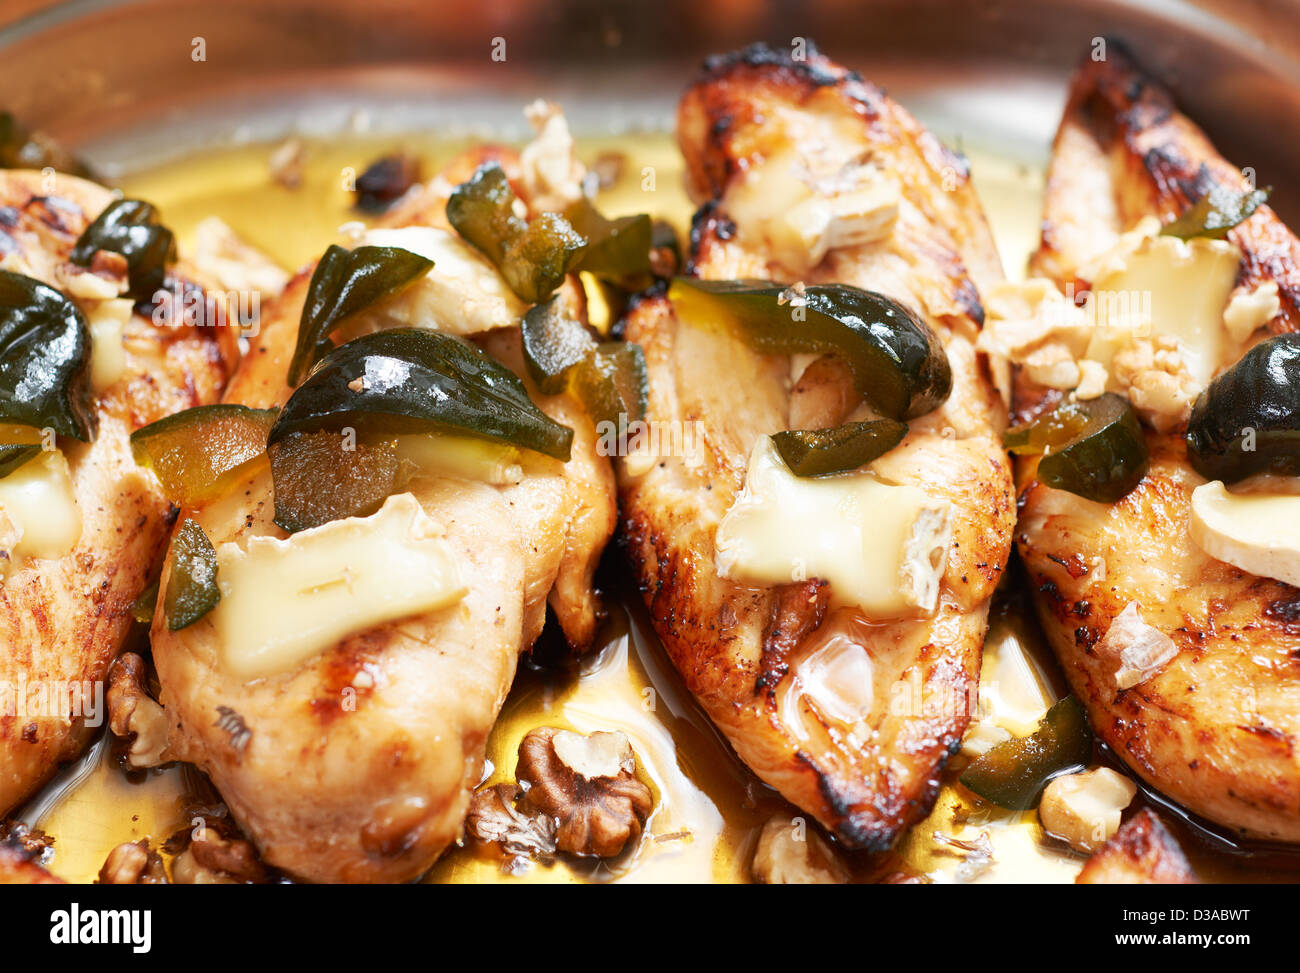 Mediterranean food of Provence, roasted chicken fillet with camembert cheese and figs - Stock Image